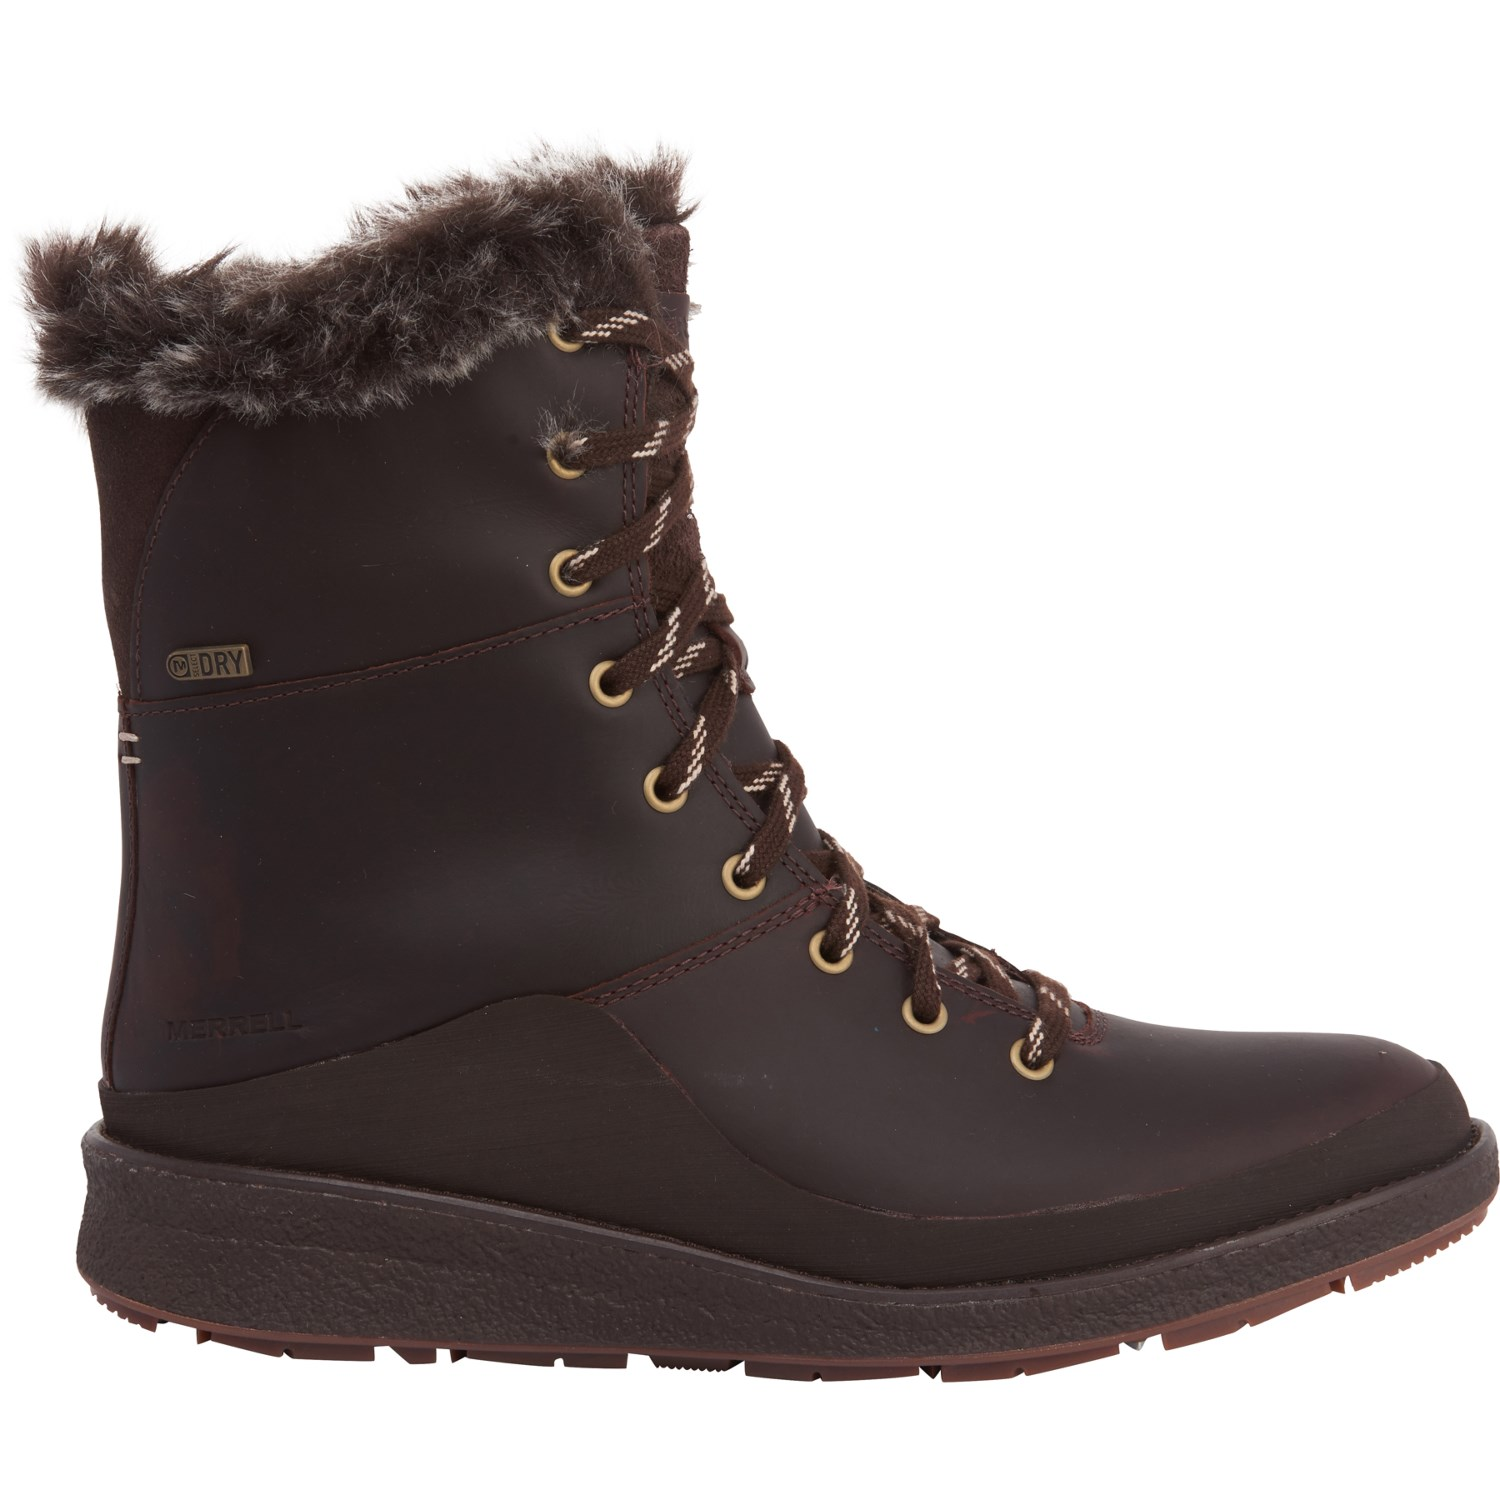 b65328a0 Merrell Tremblant Ezra Ice+ Winter Boots (For Women) - Save 39%